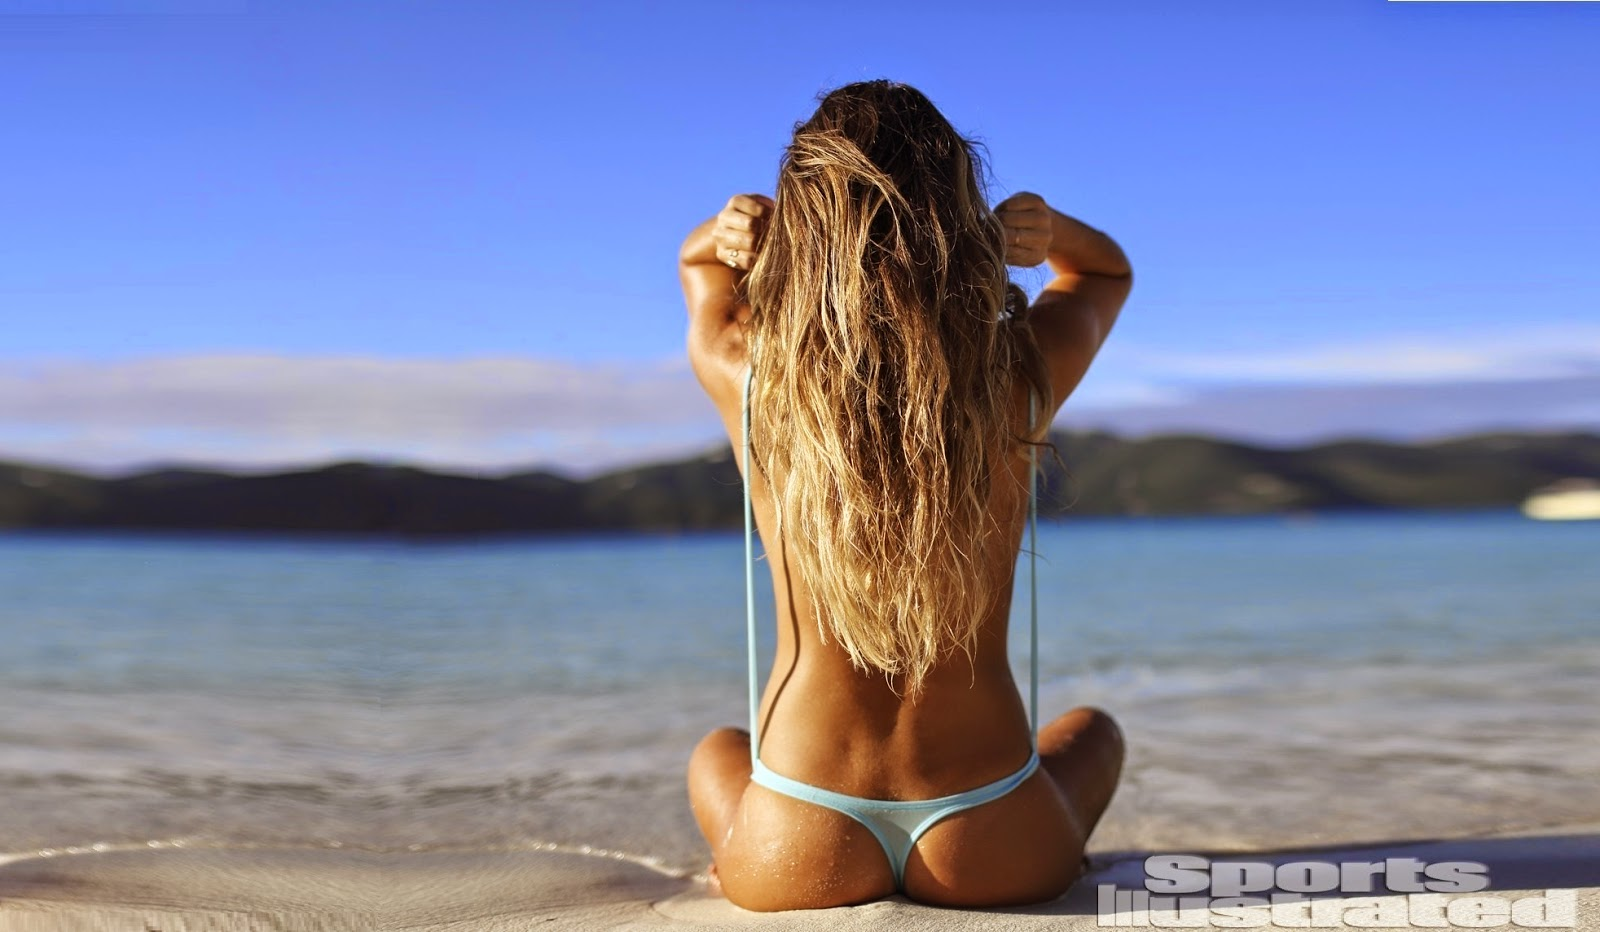 A Linda Surfista - Anastasia Ashley